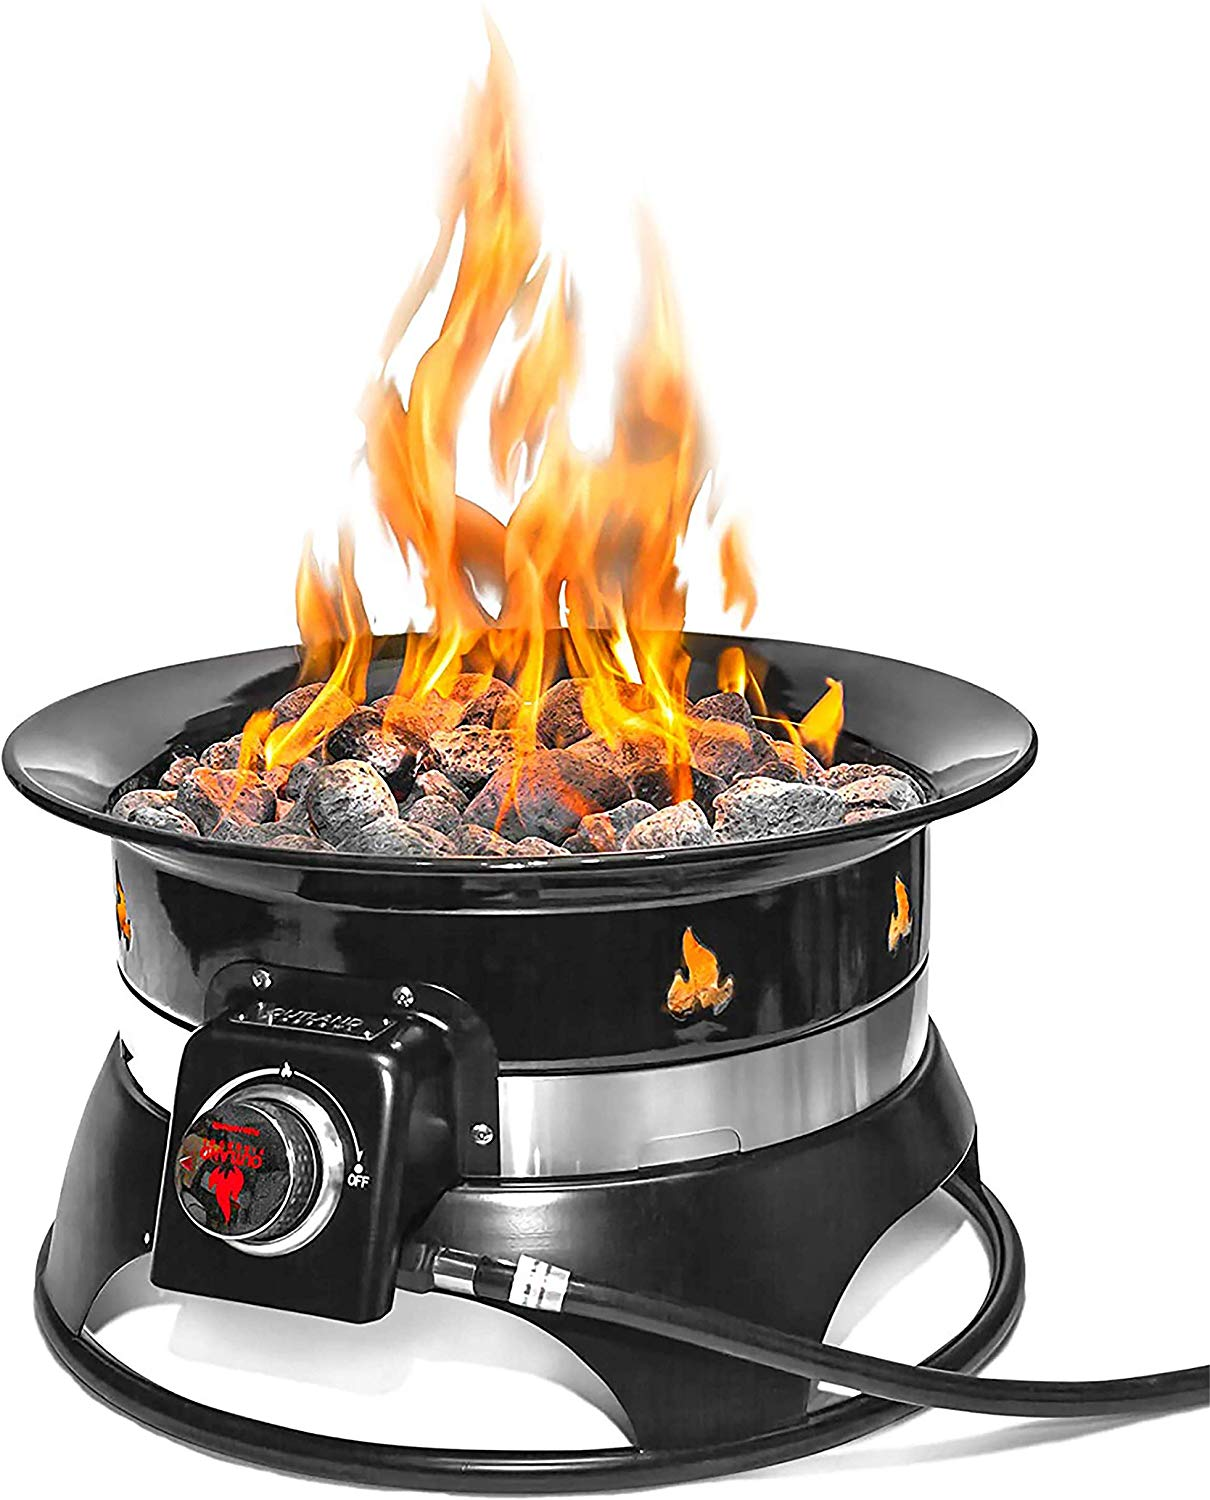 Best Portable Propane Fire Pits in 2019 | Top 10 Picks For ... on Outland Firebowl Propane Fire Pit id=14081